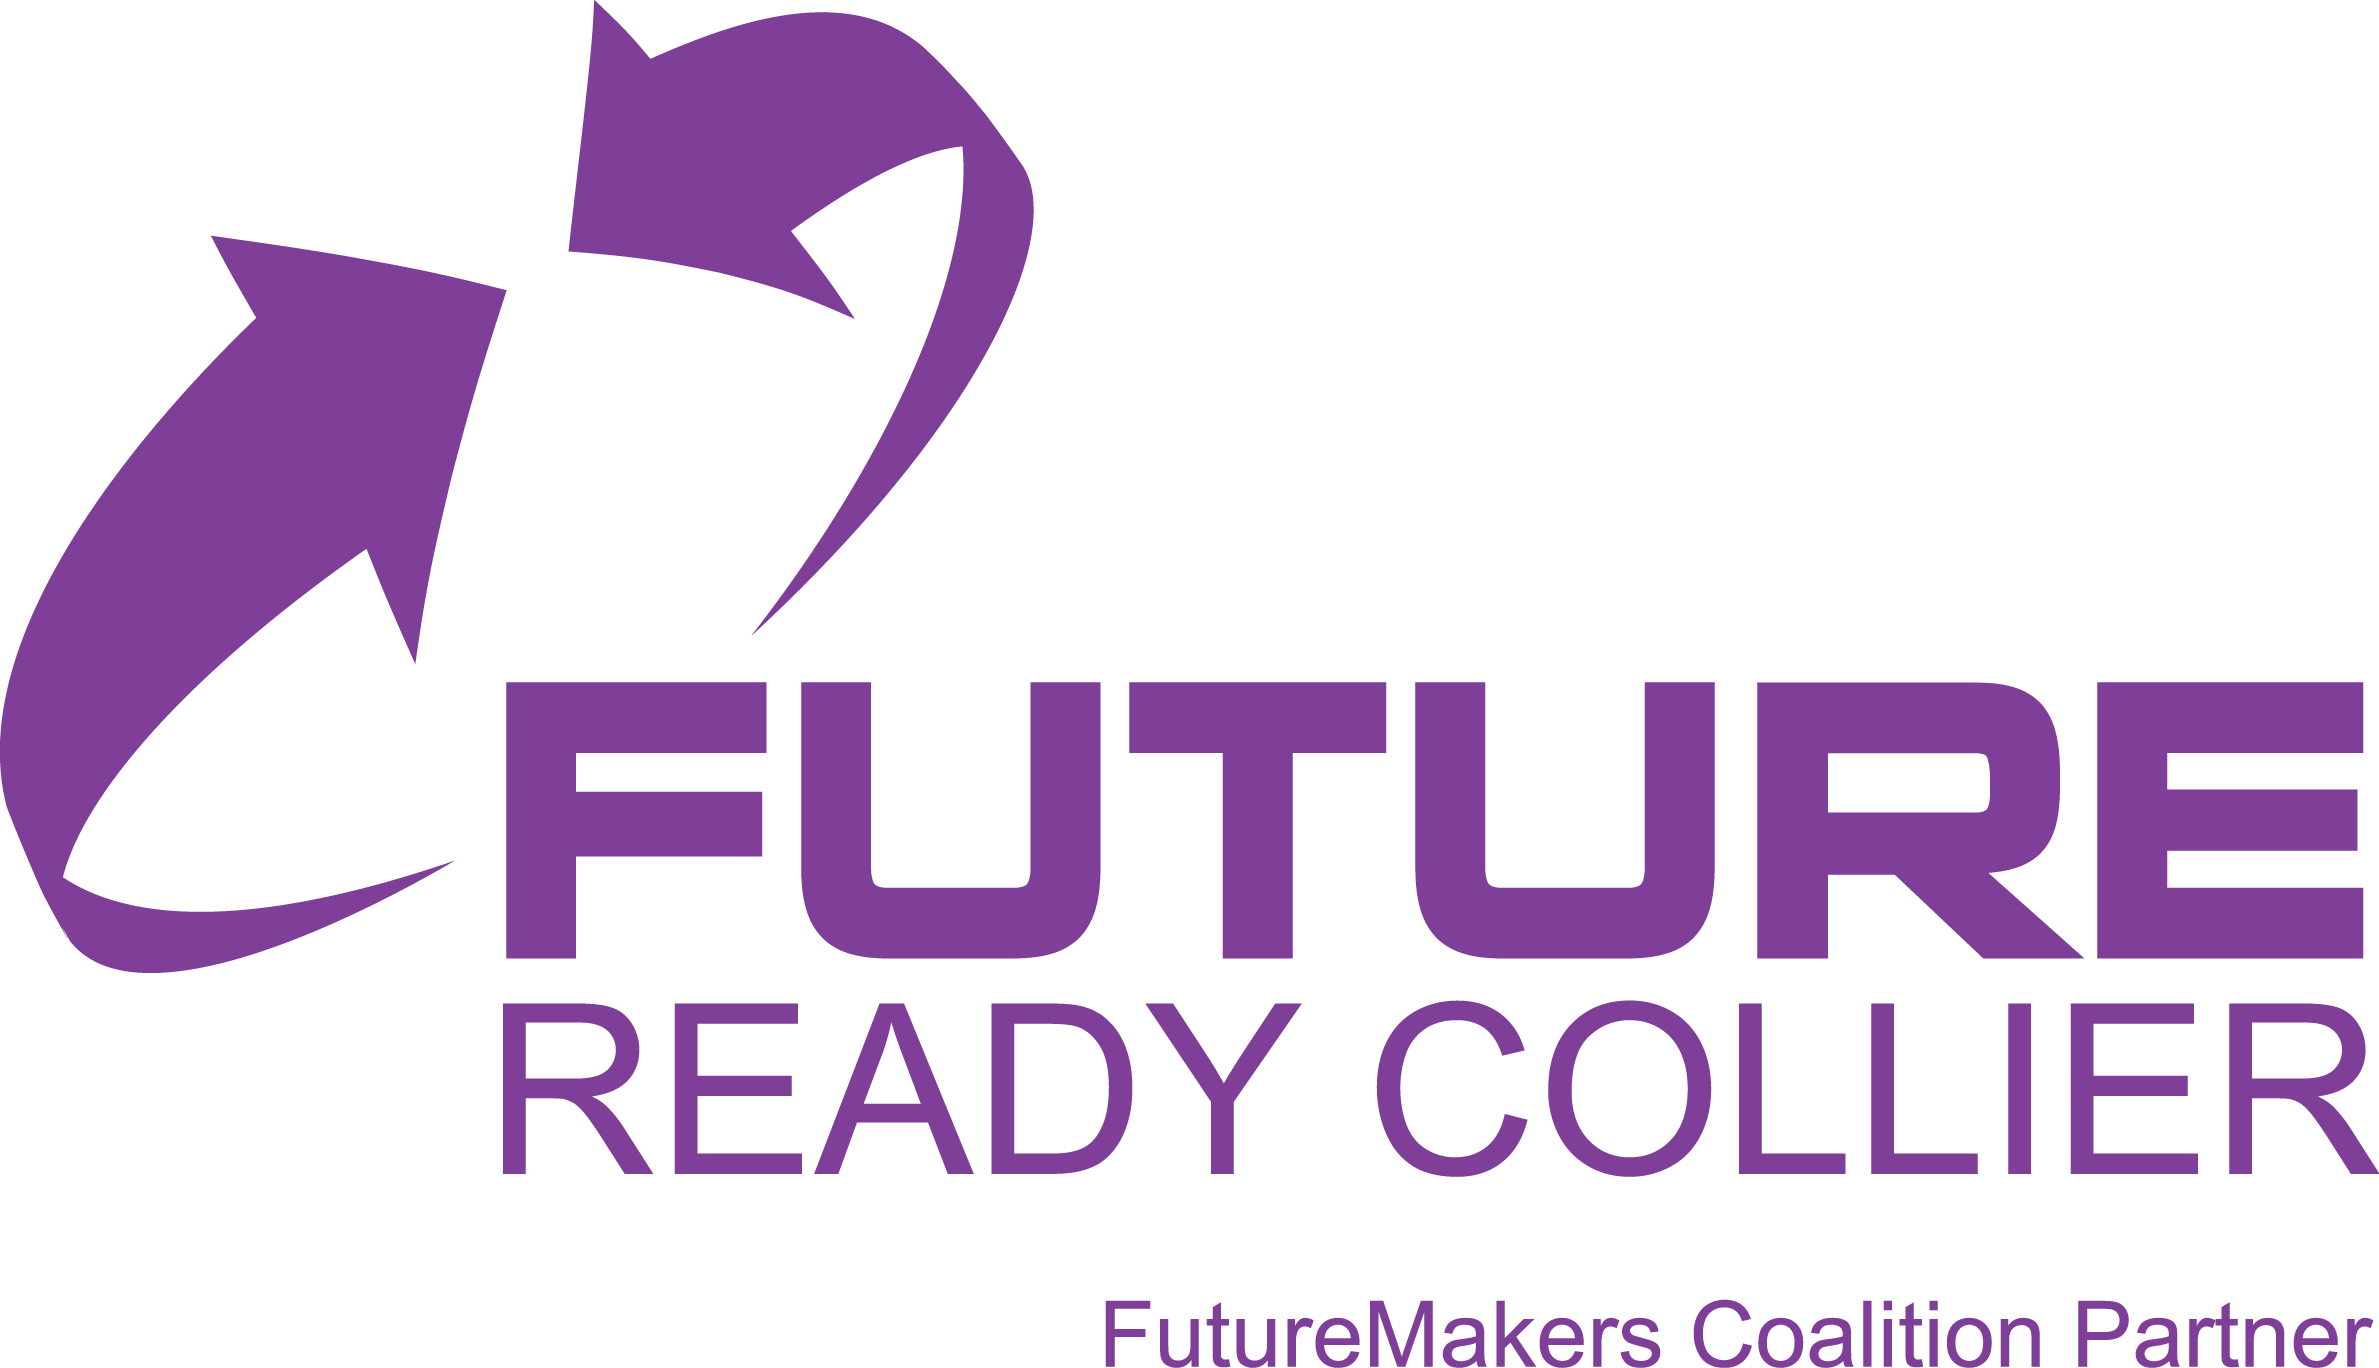 Future Ready Collier Purple Logo | Future Ready Collier - Naples, Florida